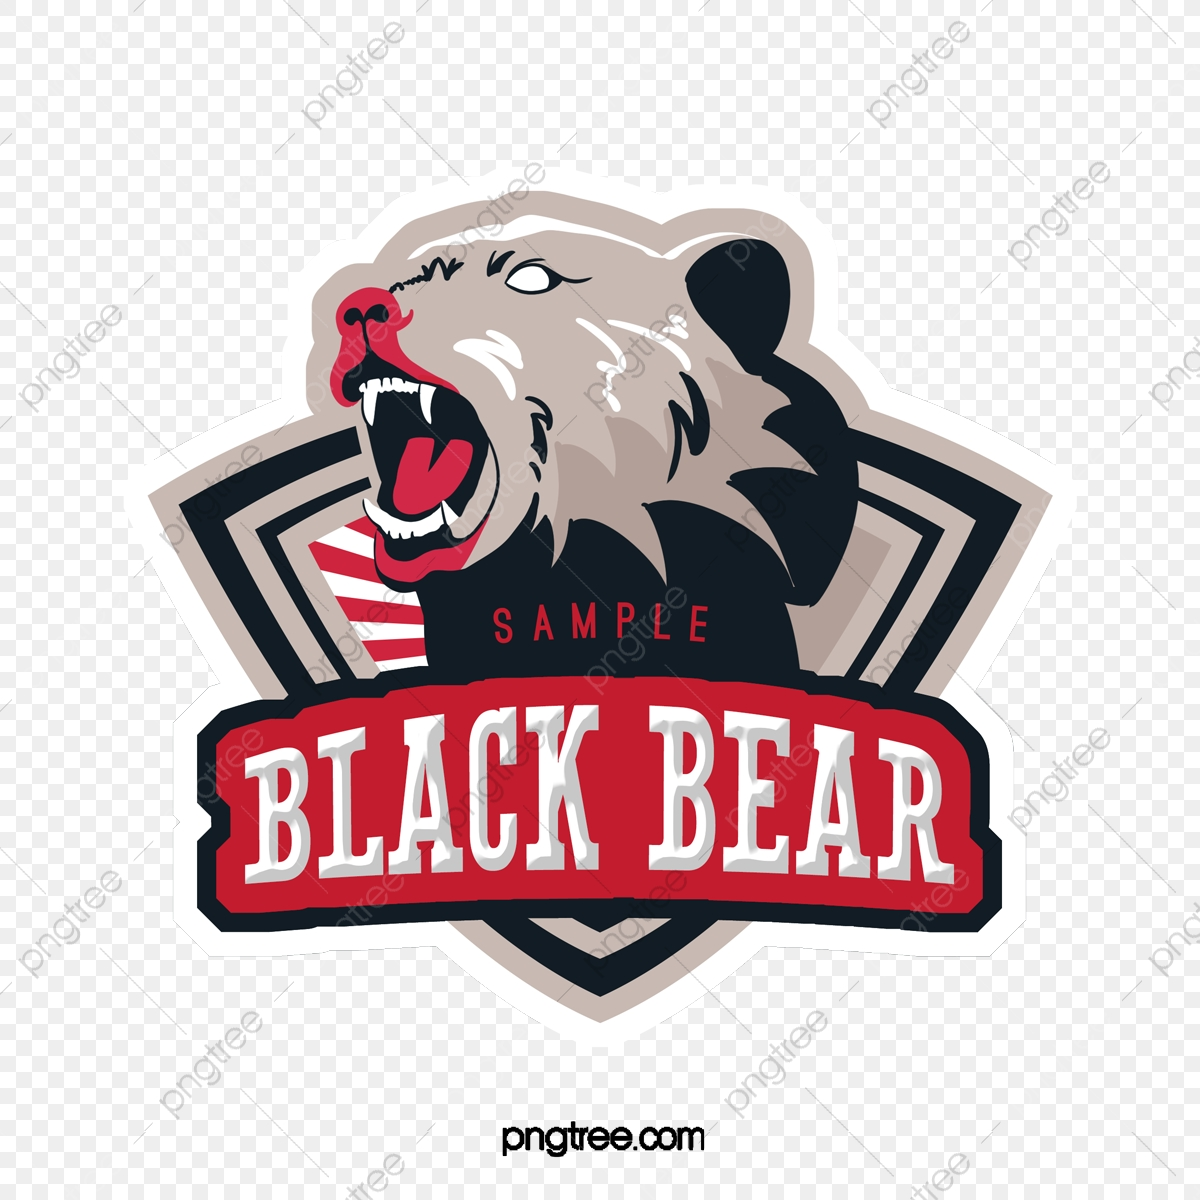 Cartoon Bear Head Avatar Club Logo Free Logo Design Template Label Cartoon Exquisite Png Transparent Clipart Image And Psd File For Free Download